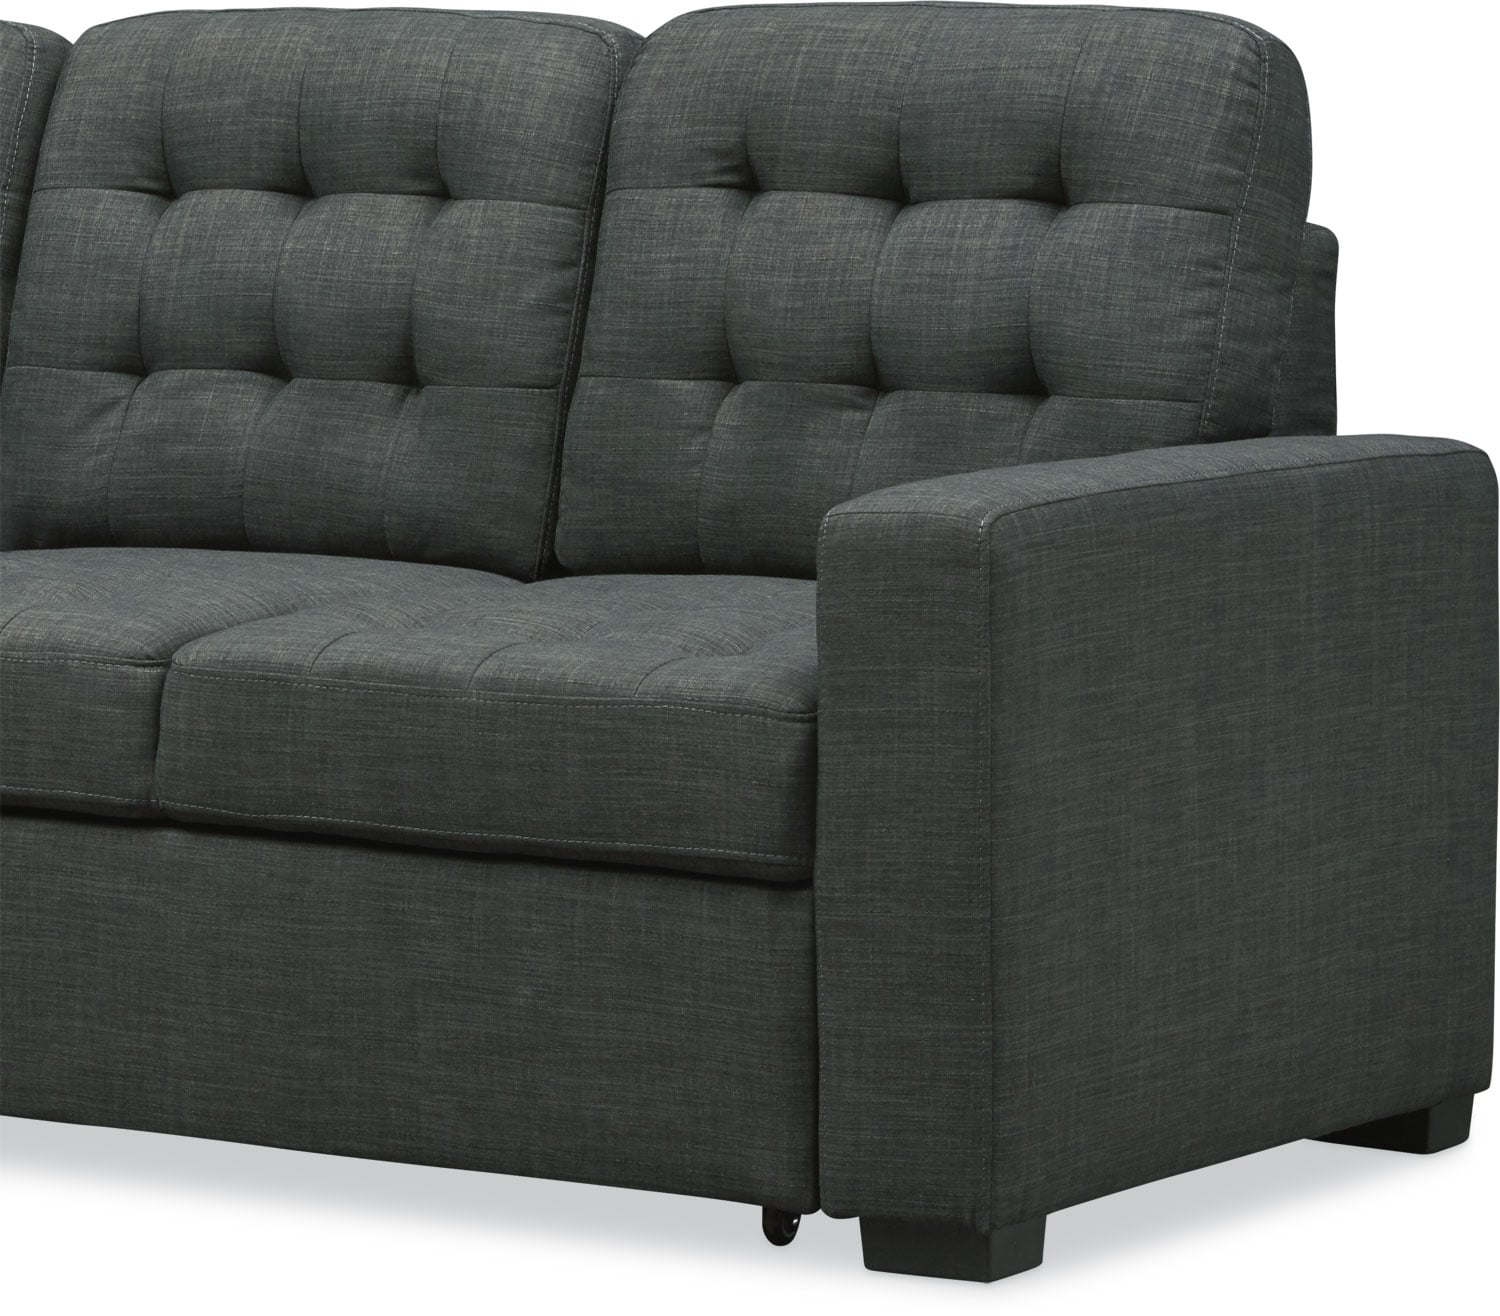 Chatman 2 Piece Sleeper Sectional With Chaise Value City